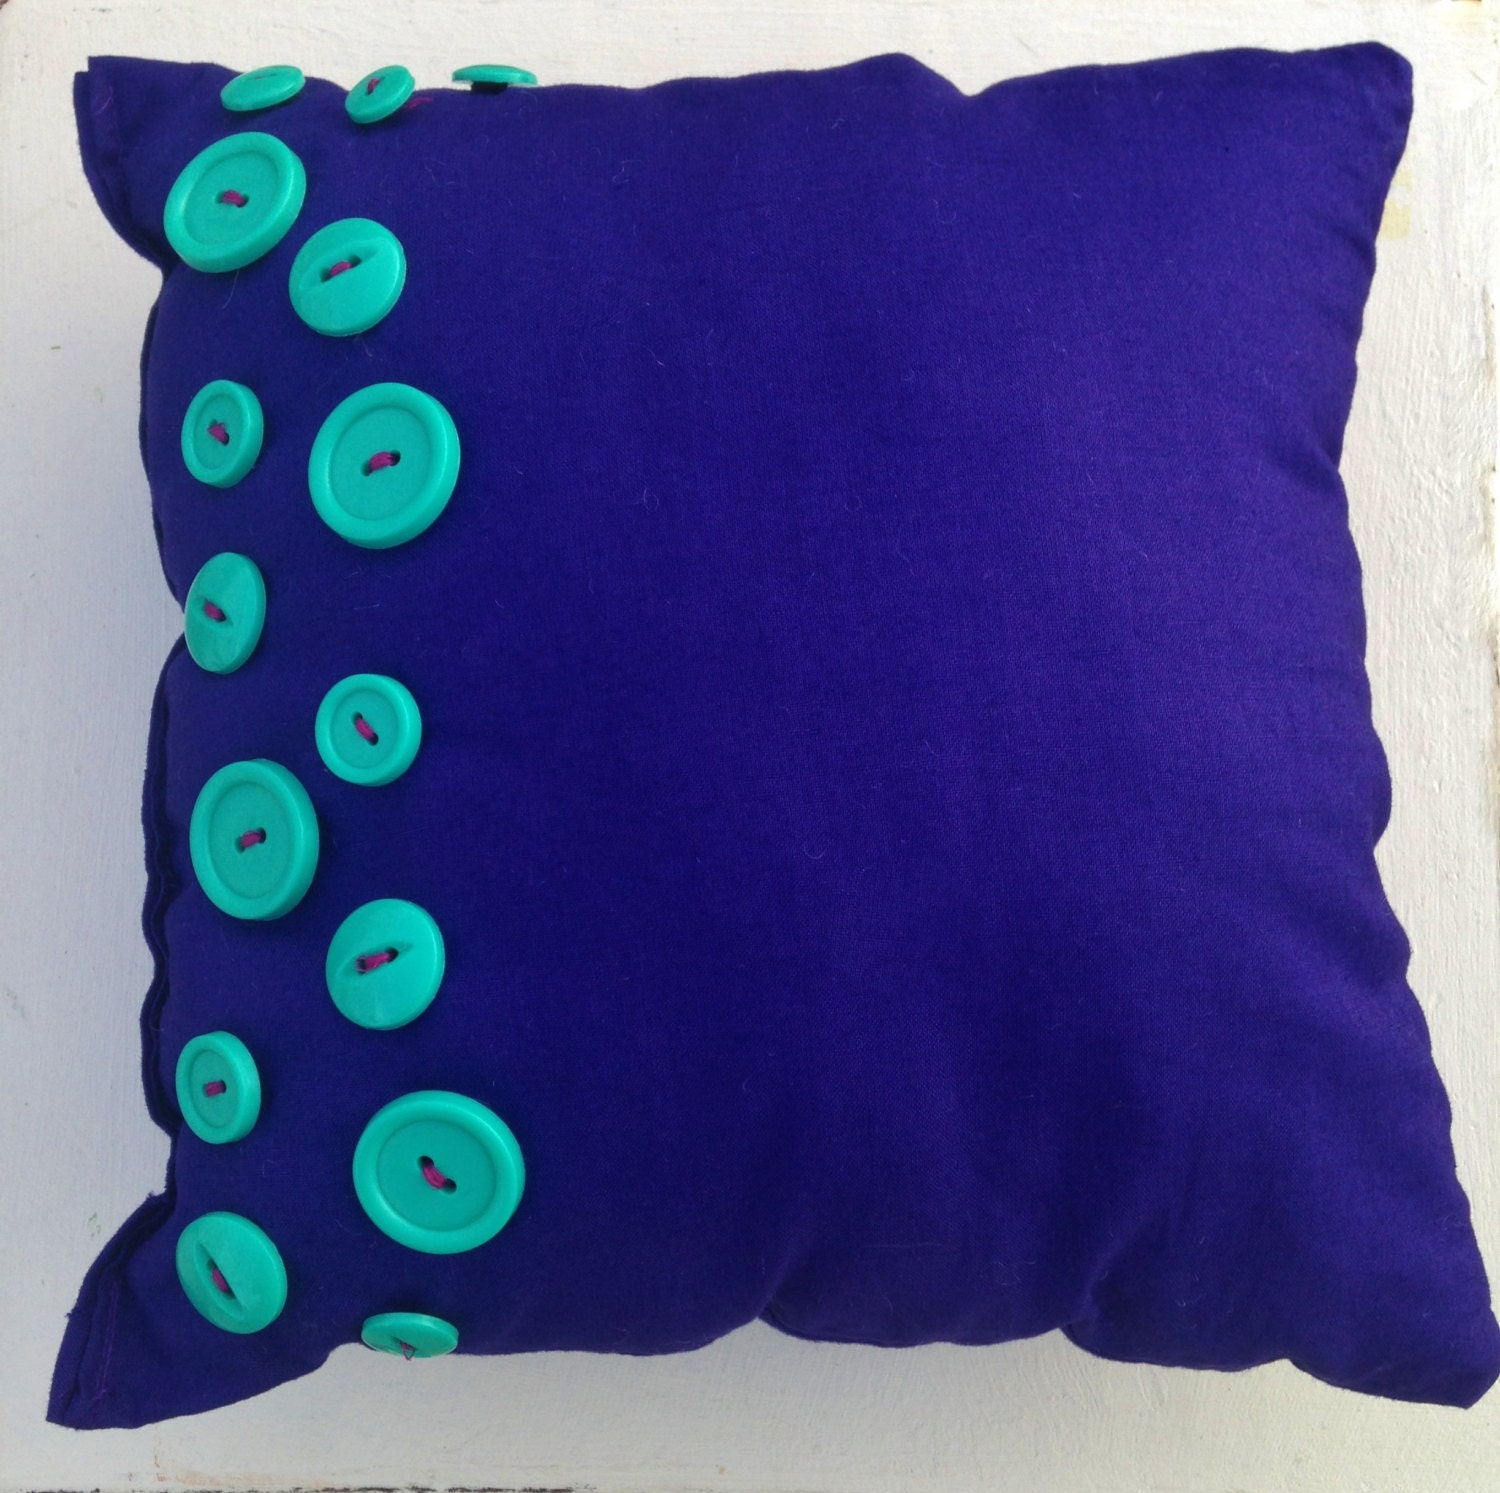 Throw Pillows With Buttons : Throw Pillow With Buttons // Mini Throw Pillow // by HMKHandmade